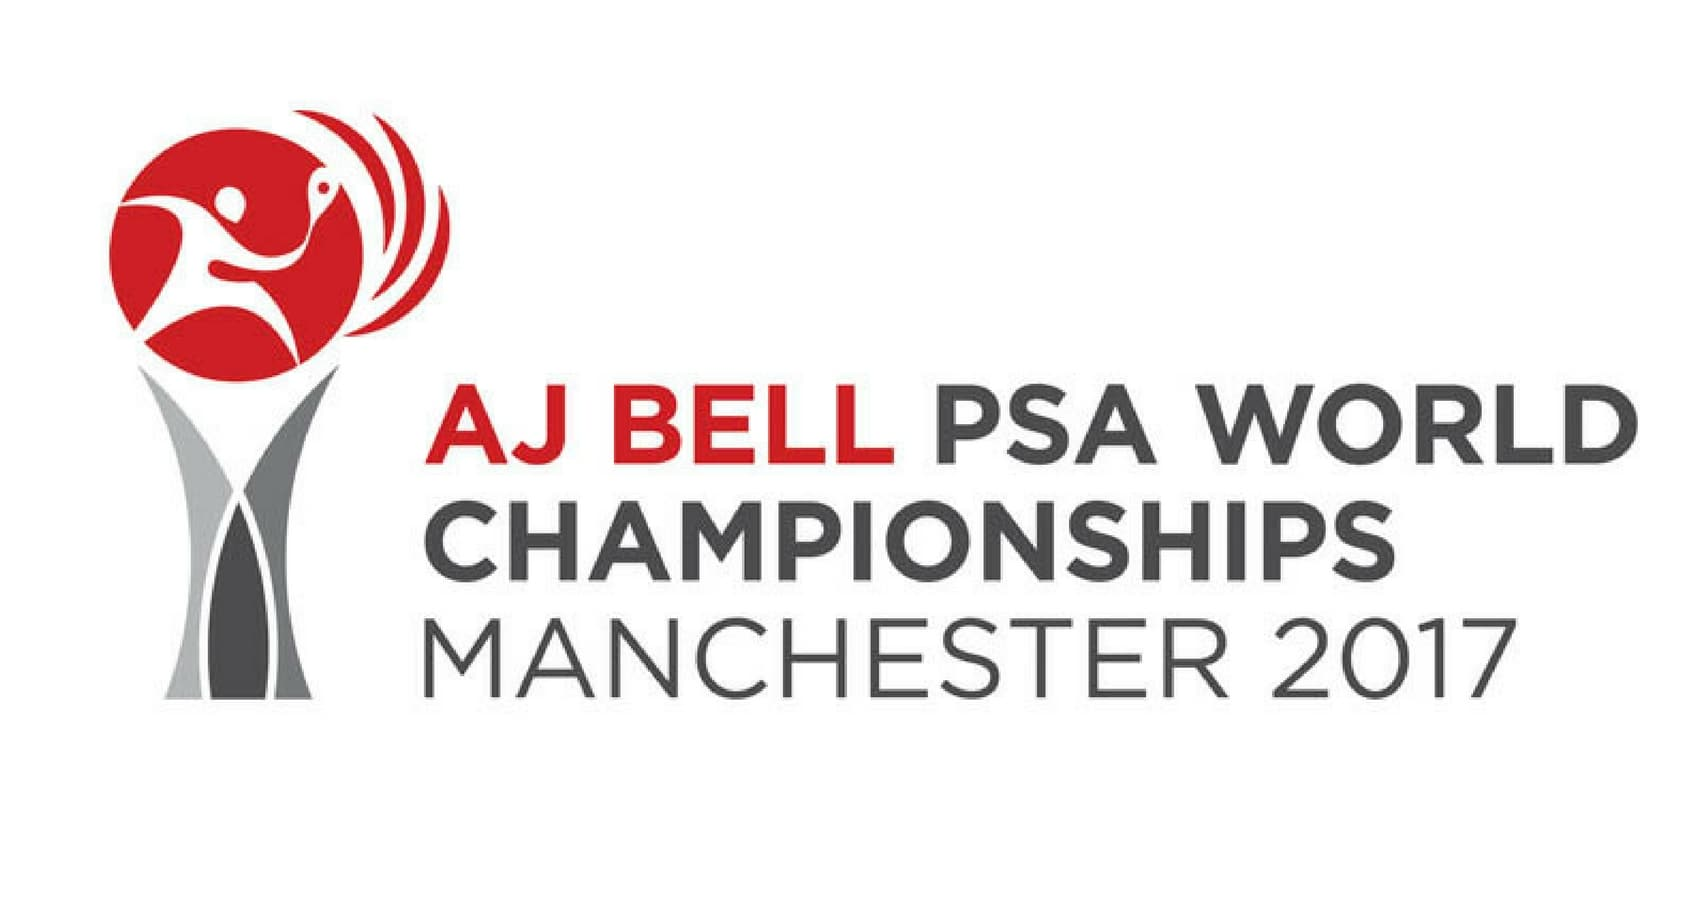 AJ Bell PSA World Championships tickets are now on sale to the general public